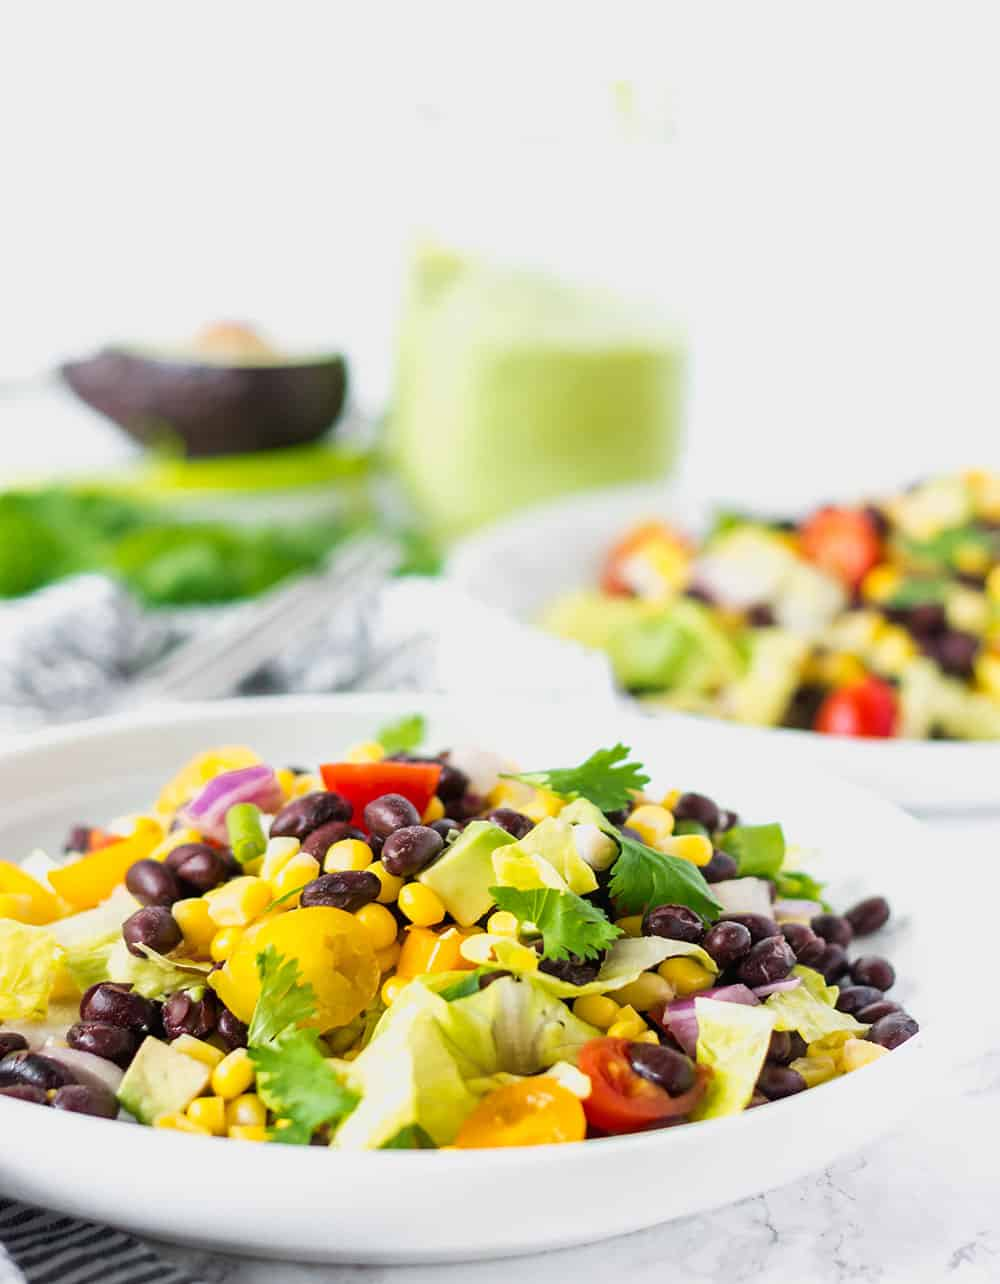 Southwestern Salad with Avocado Dressing, Vegan., Gluten-Free